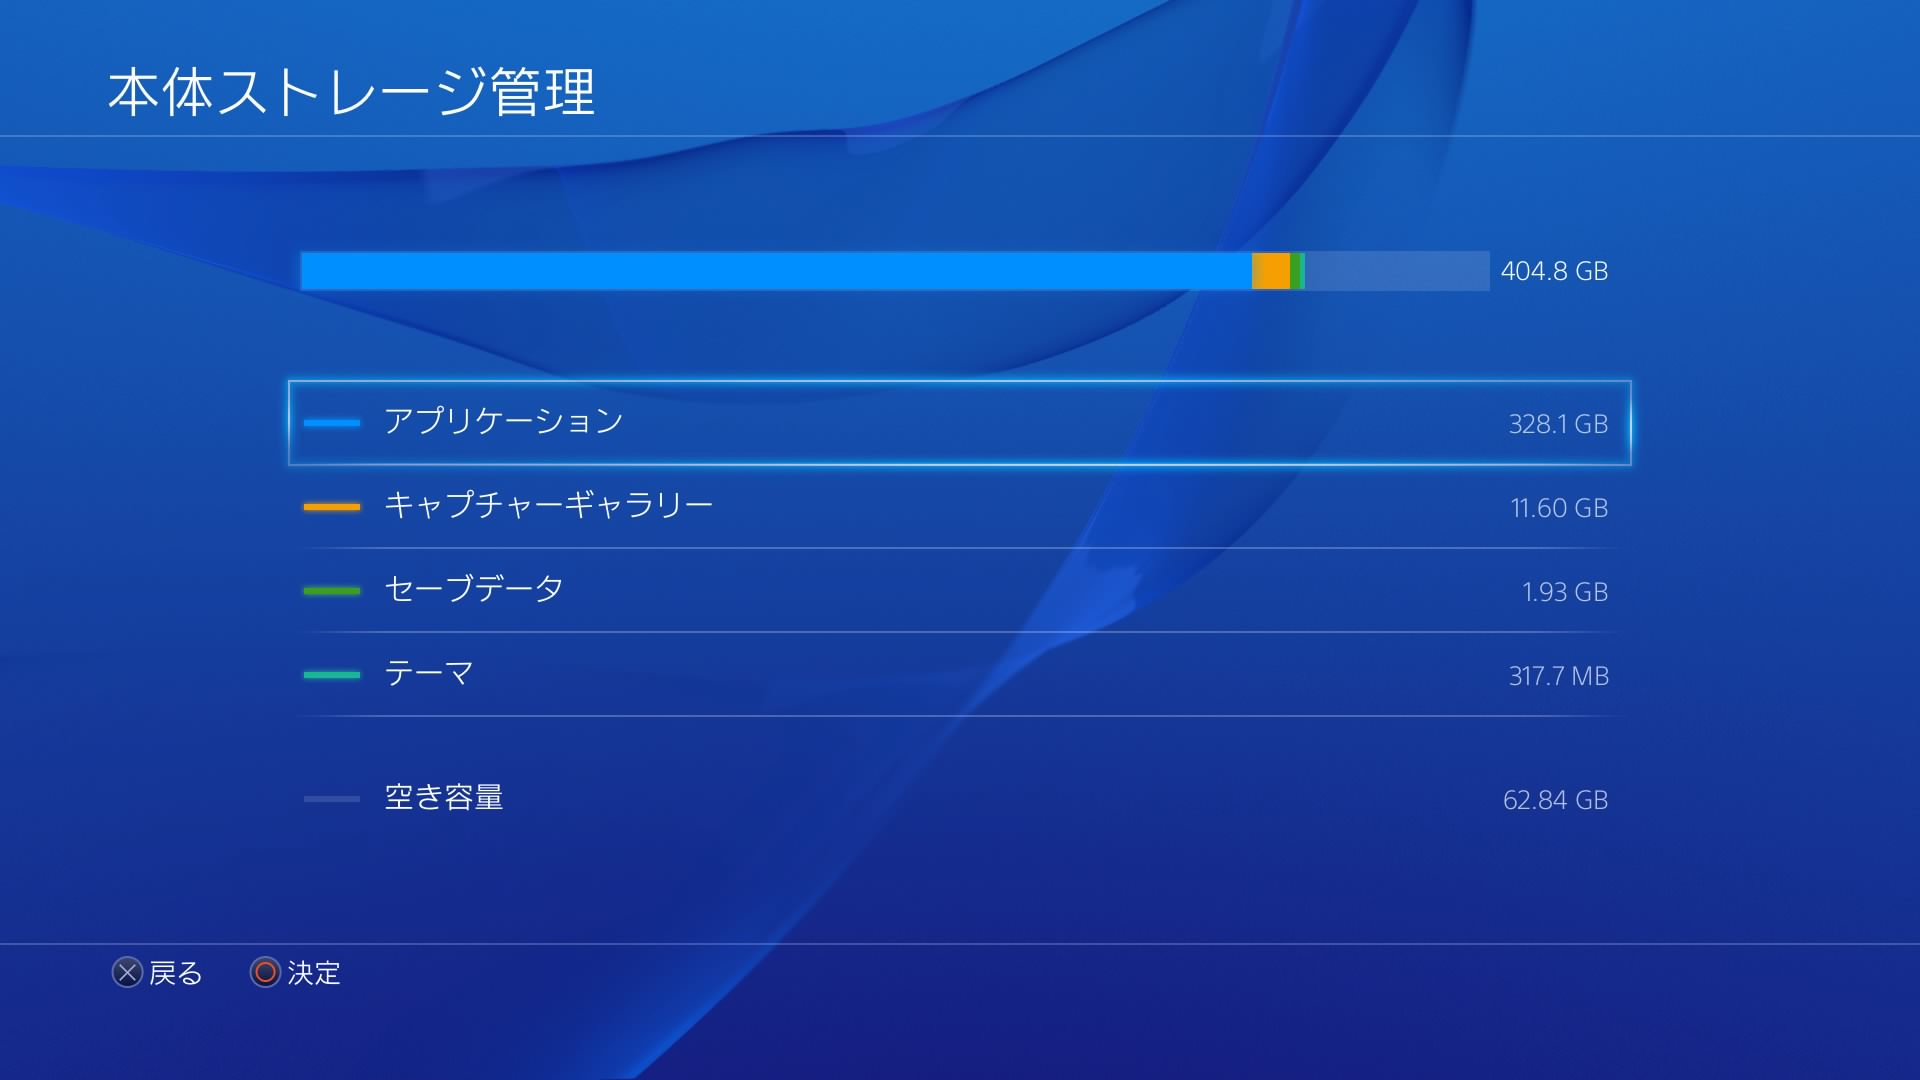 How to check capacity of playstation 4 3